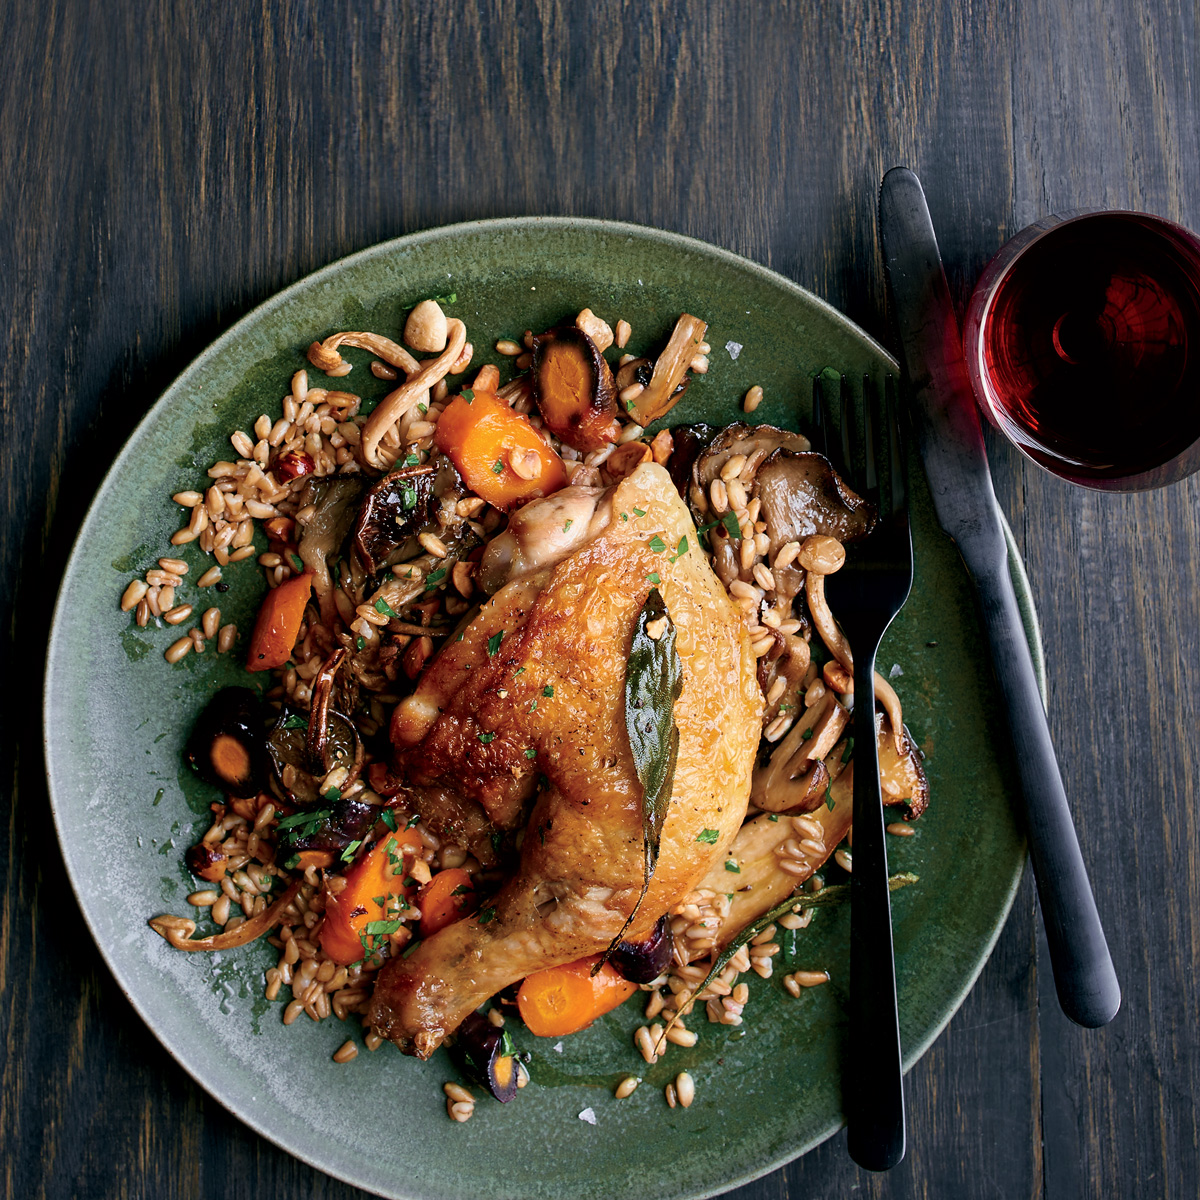 Pan Roasted Chicken with Warm Farro Salad